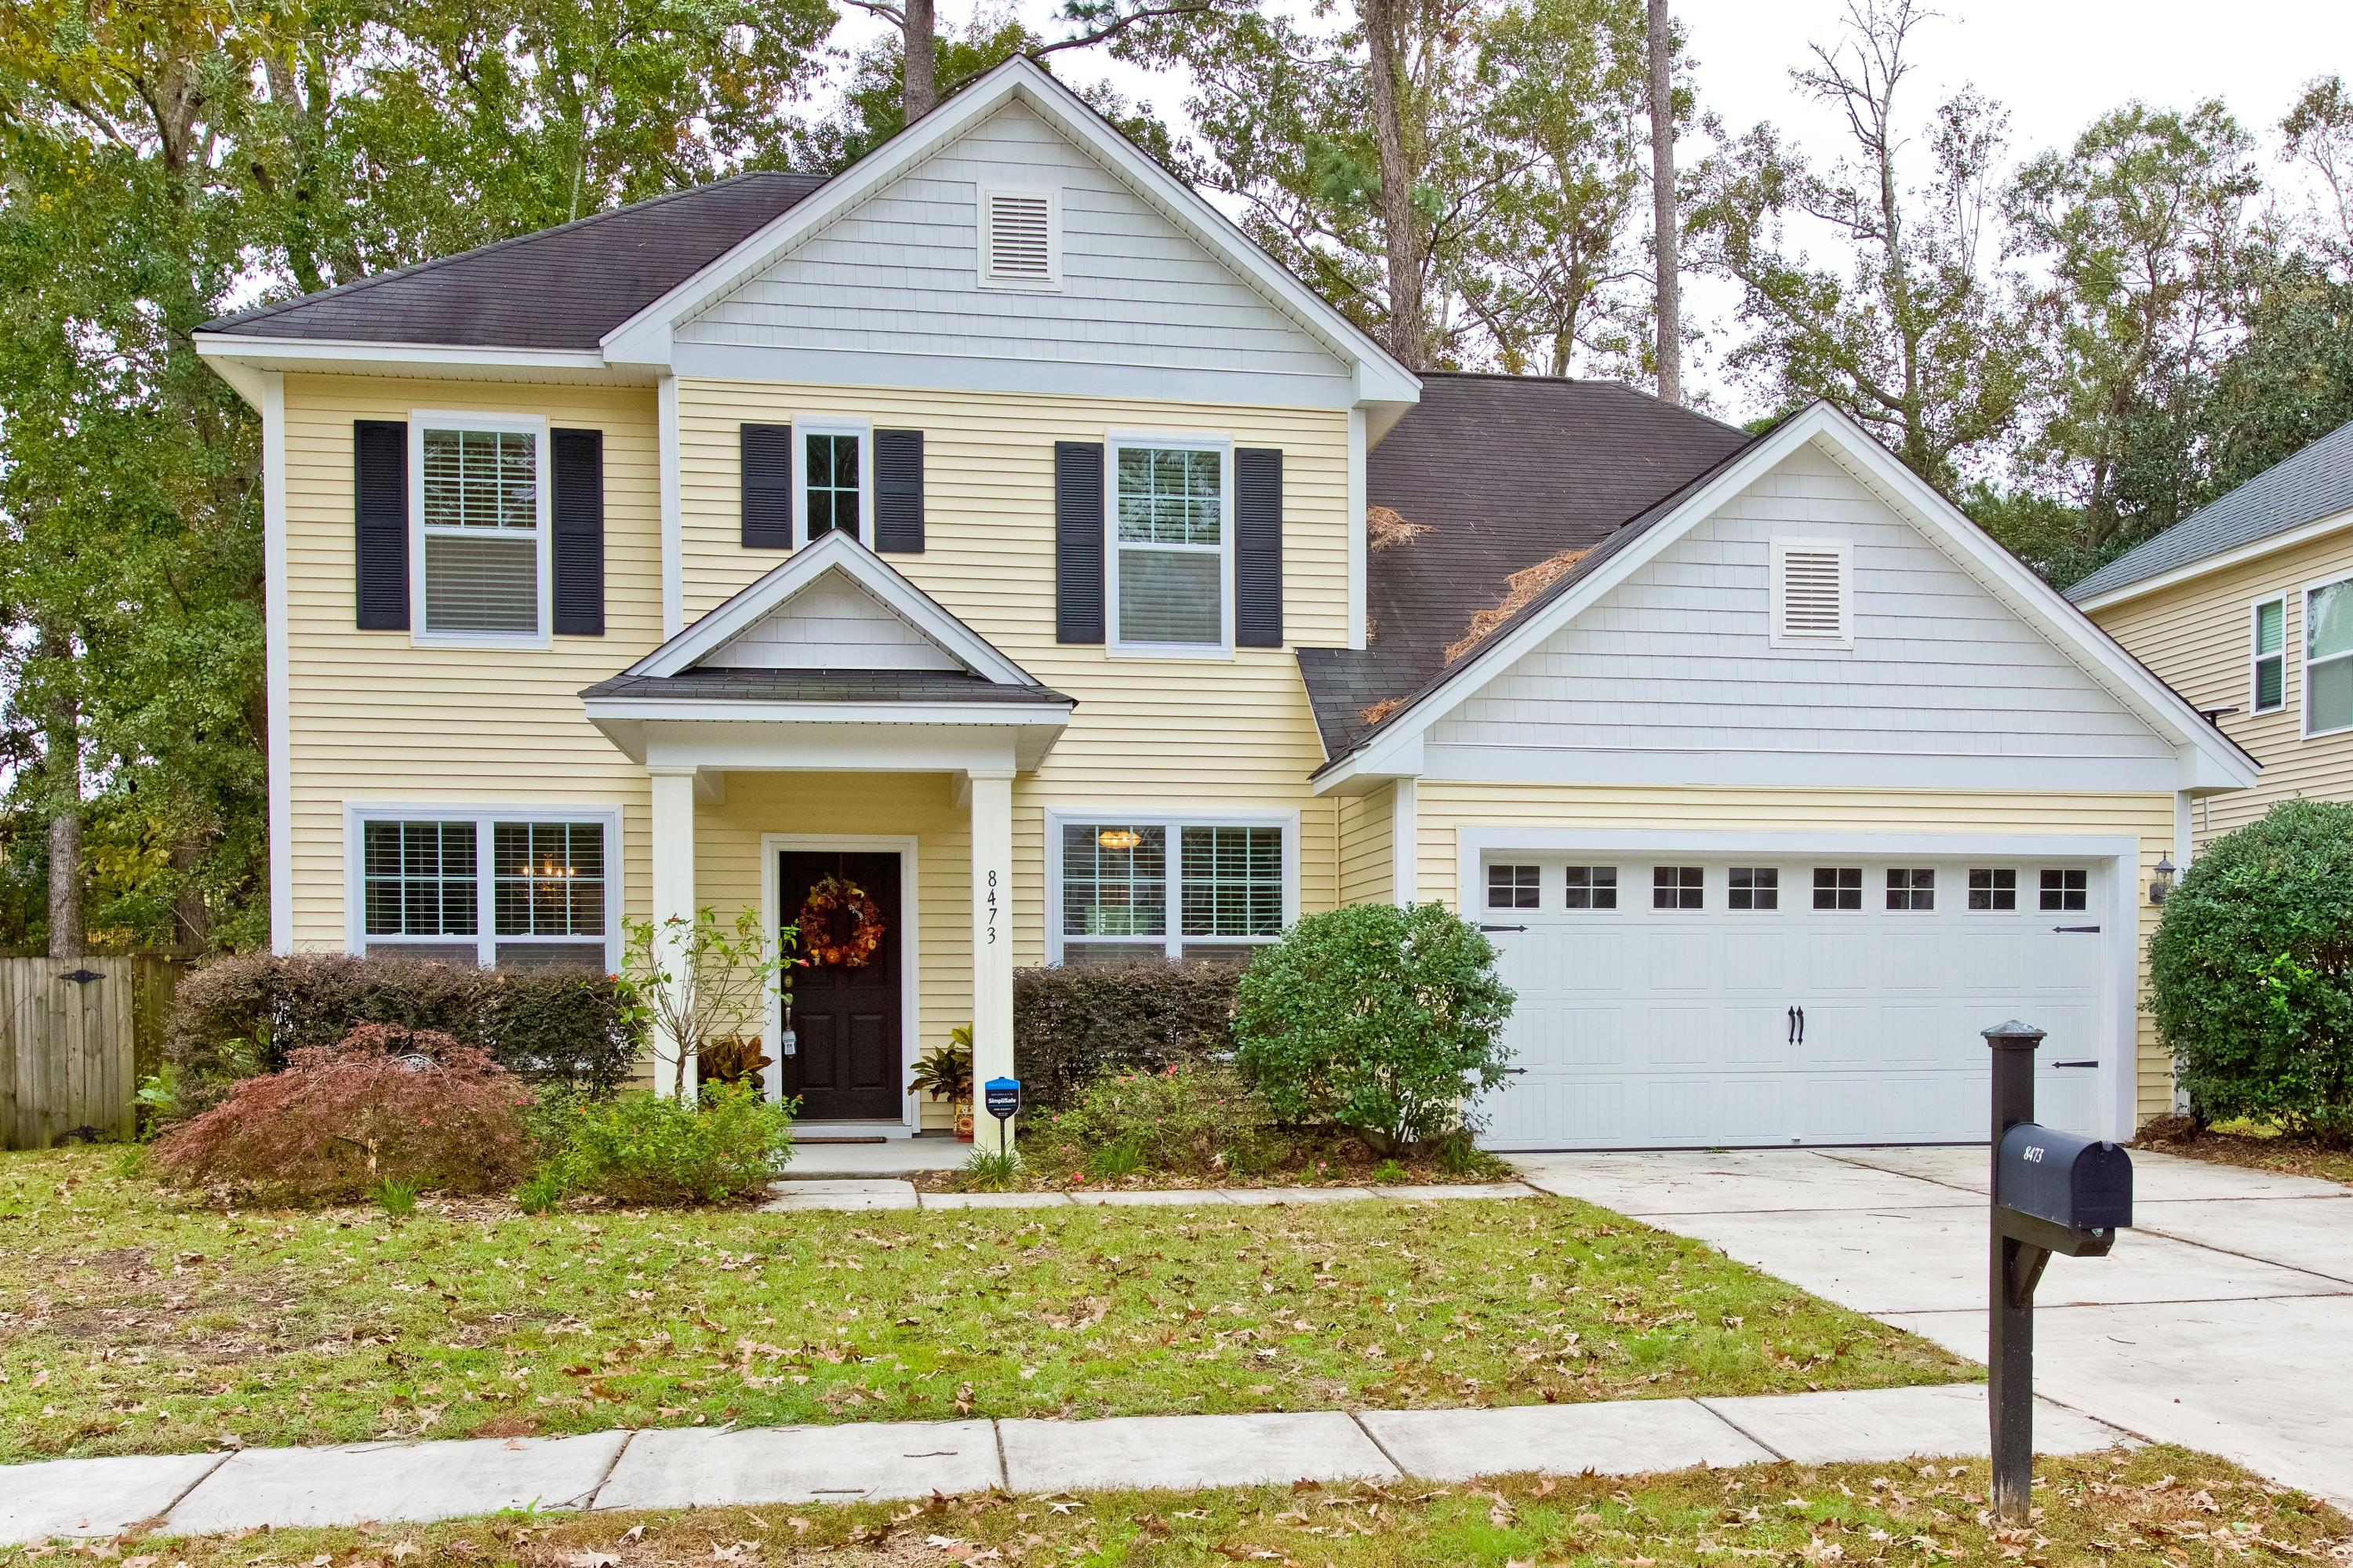 Appian Way Homes For Sale - 8473 Athens, North Charleston, SC - 4